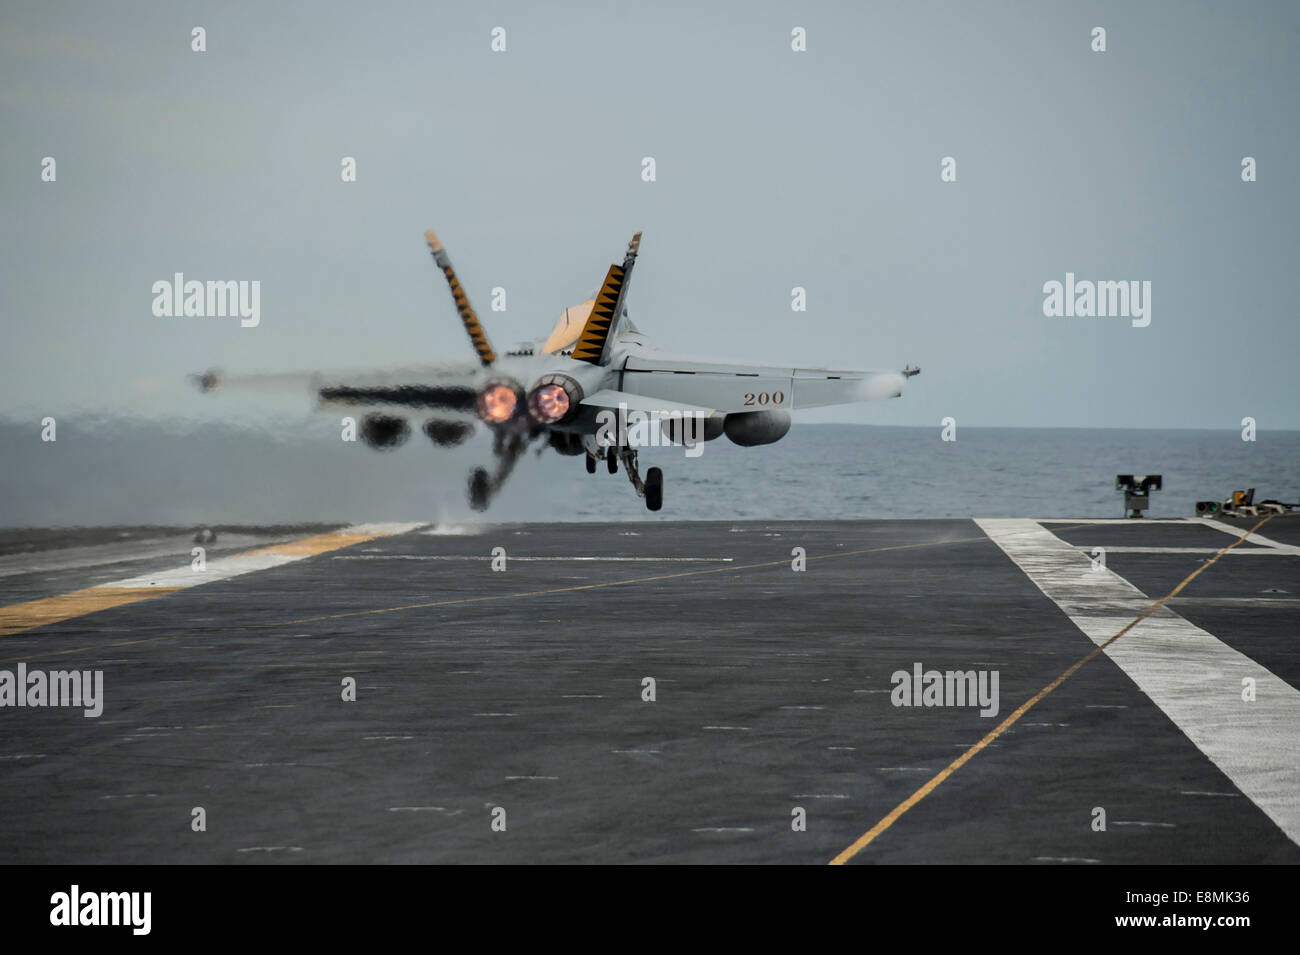 South China Sea, October 24, 2013 - An F/A-18E Super Hornet takes off from the flight deck of the U.S. Navy's - Stock Image